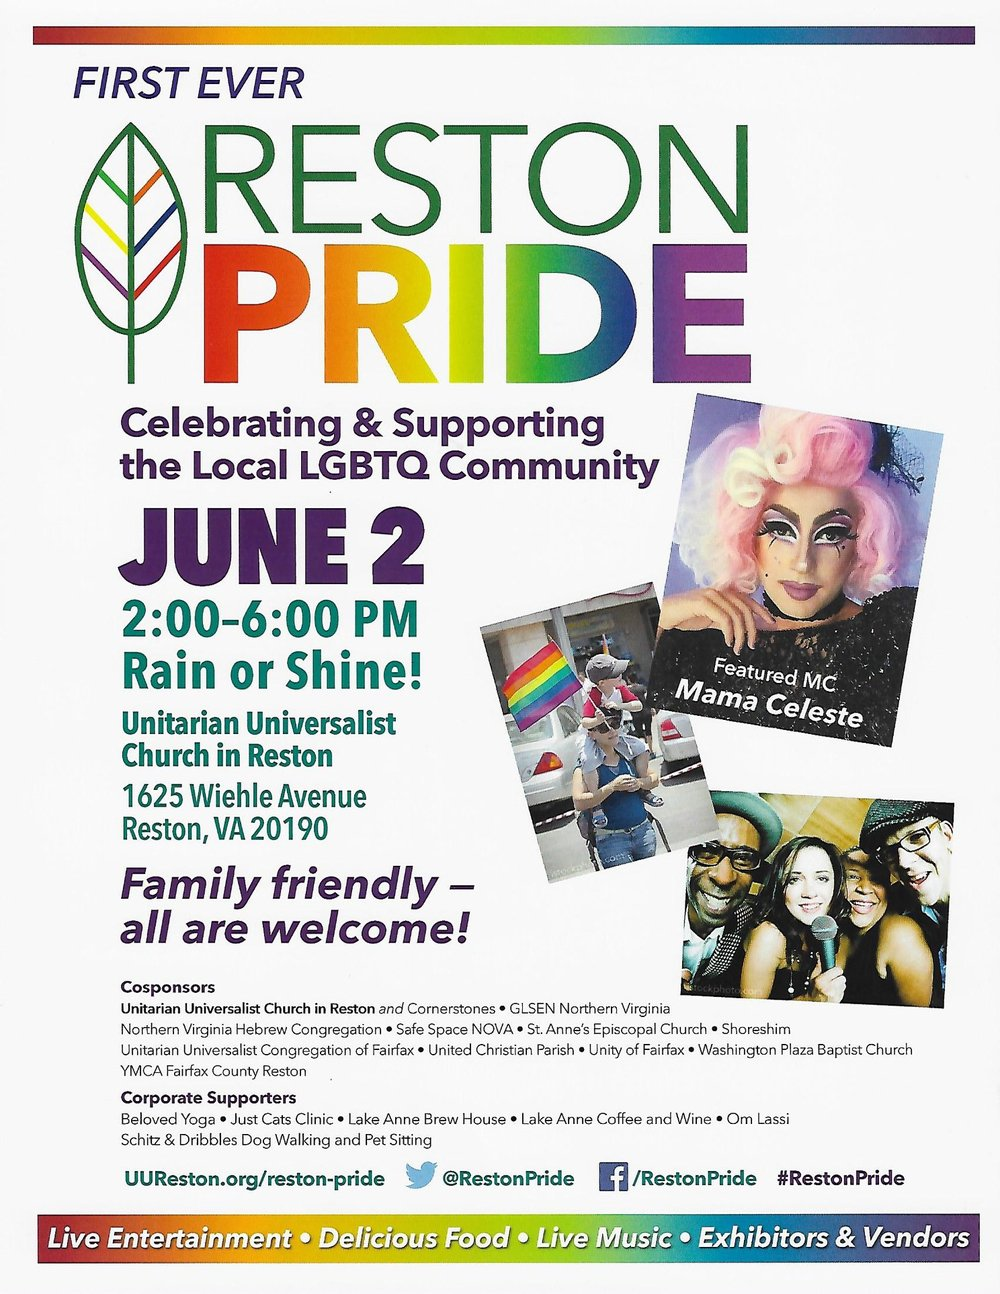 The first ever Reston Pride was a true labor of love.